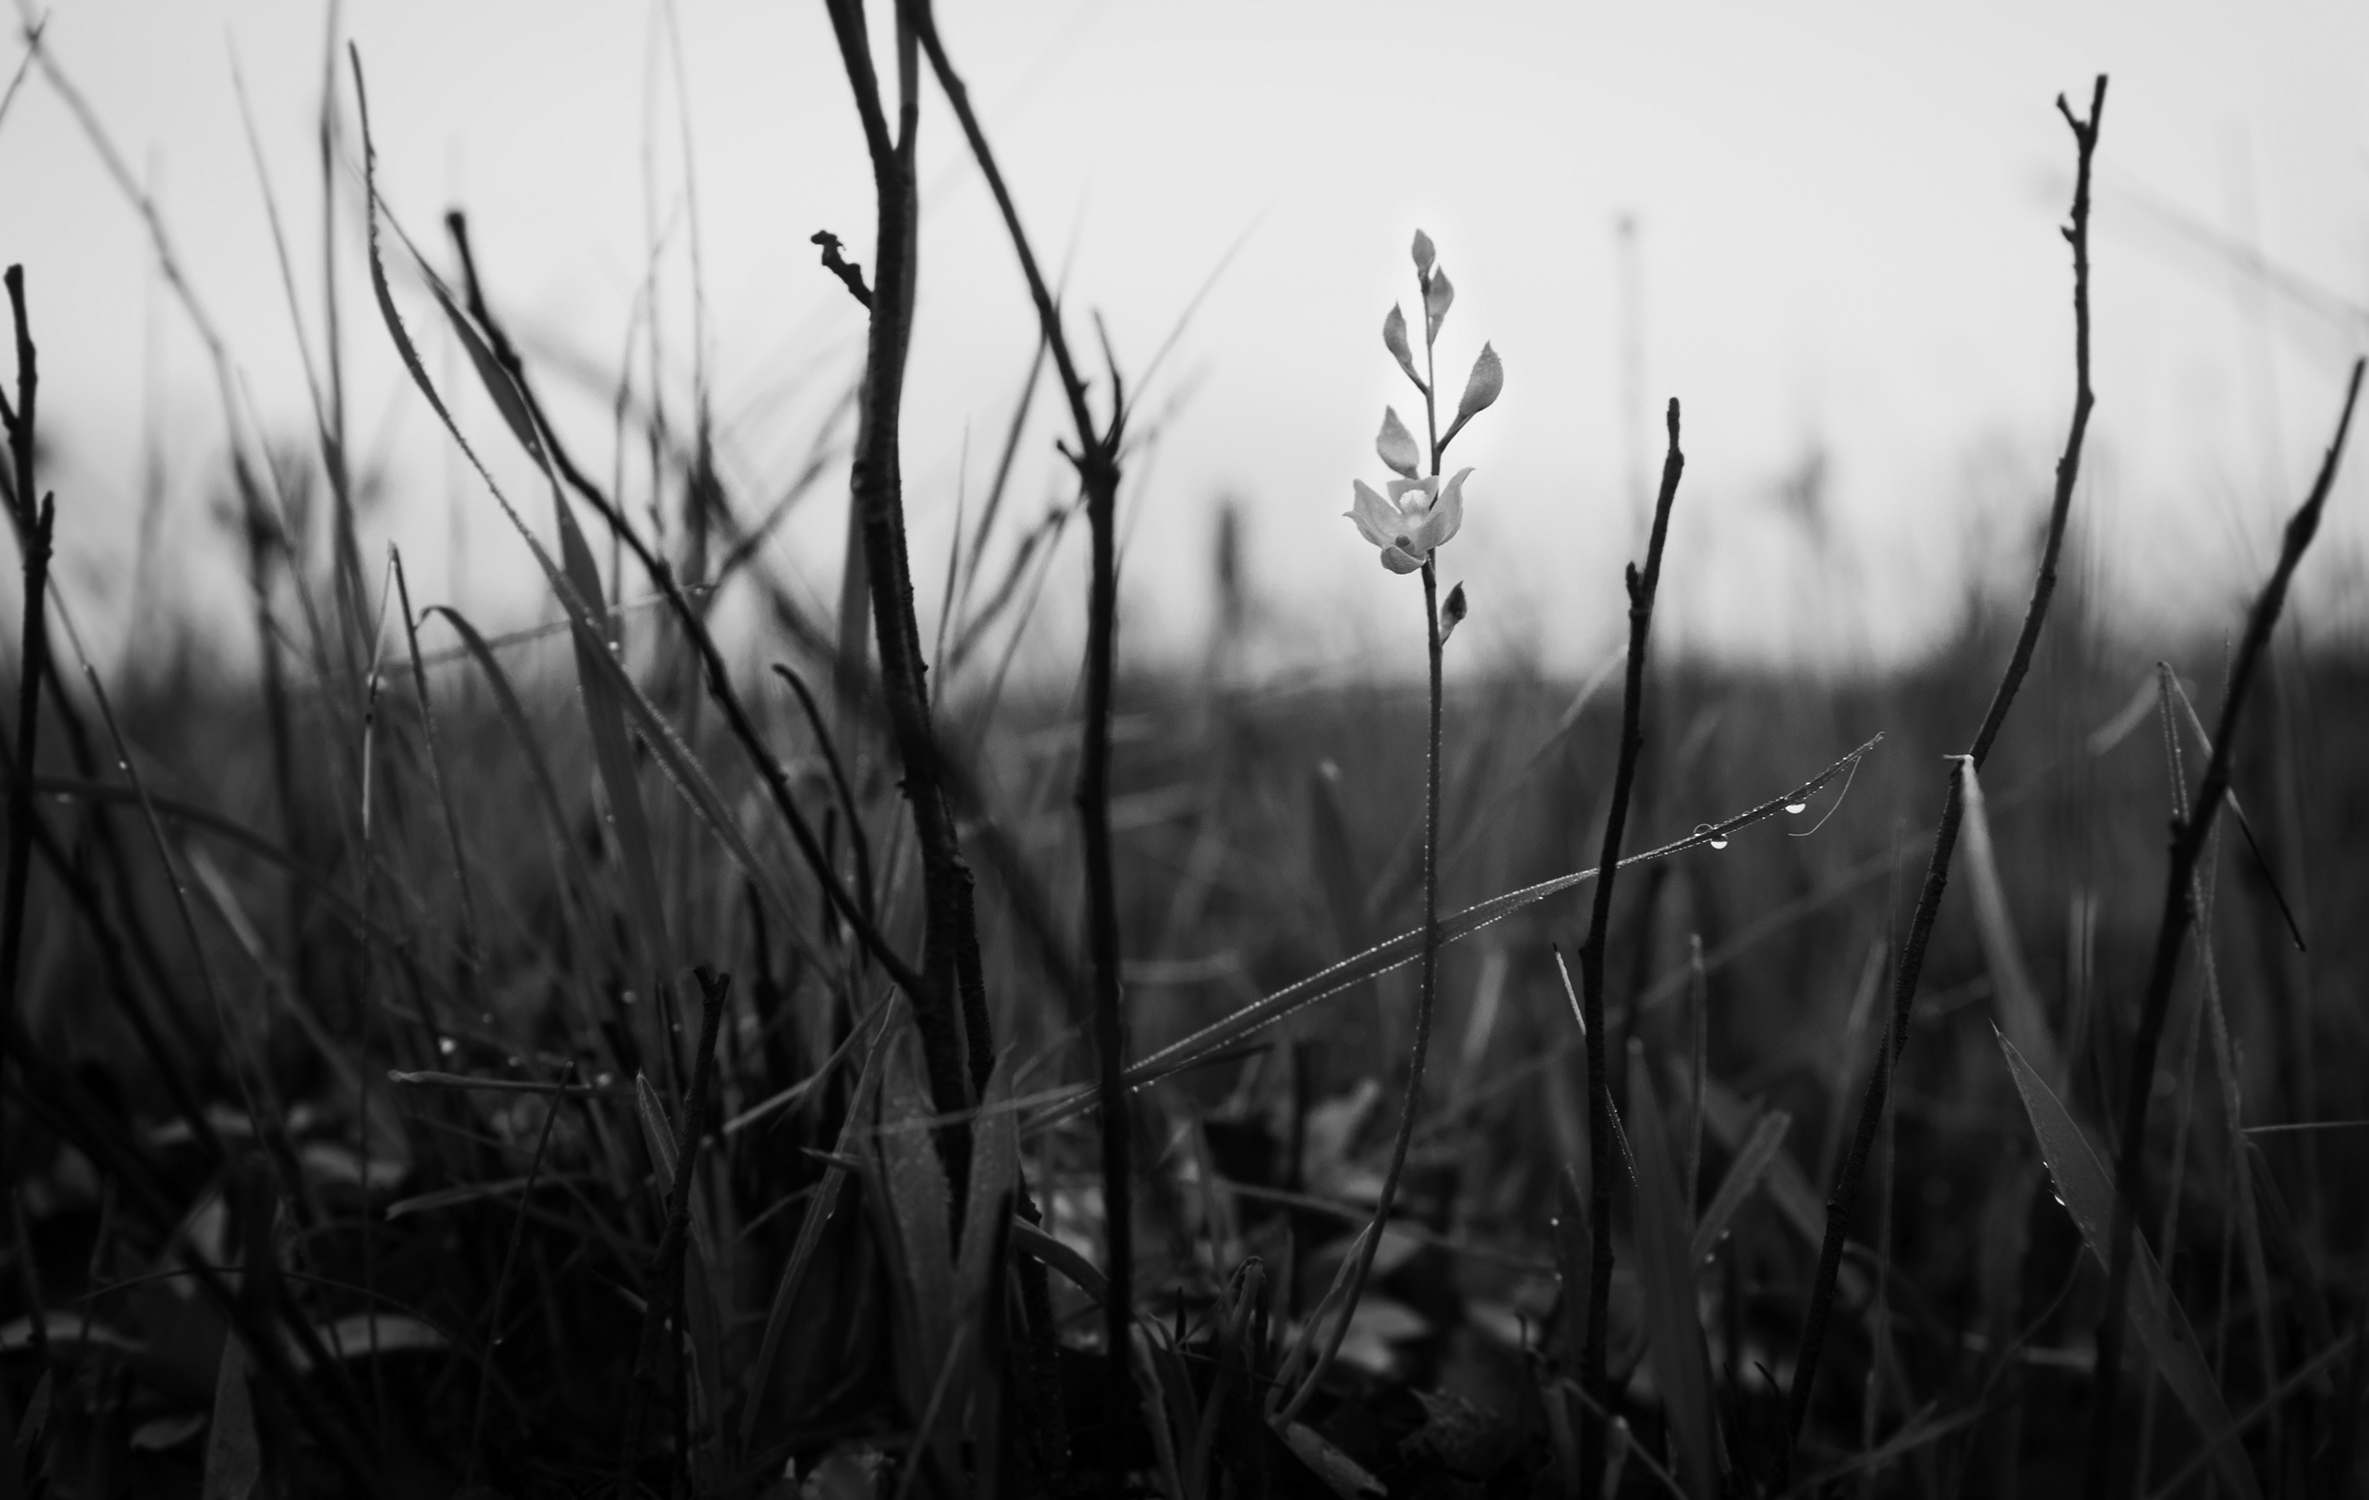 Just weeks after a prescribed fire at a Florida Grasshapper Sparrow site, green grass was growing and flowers blooming.